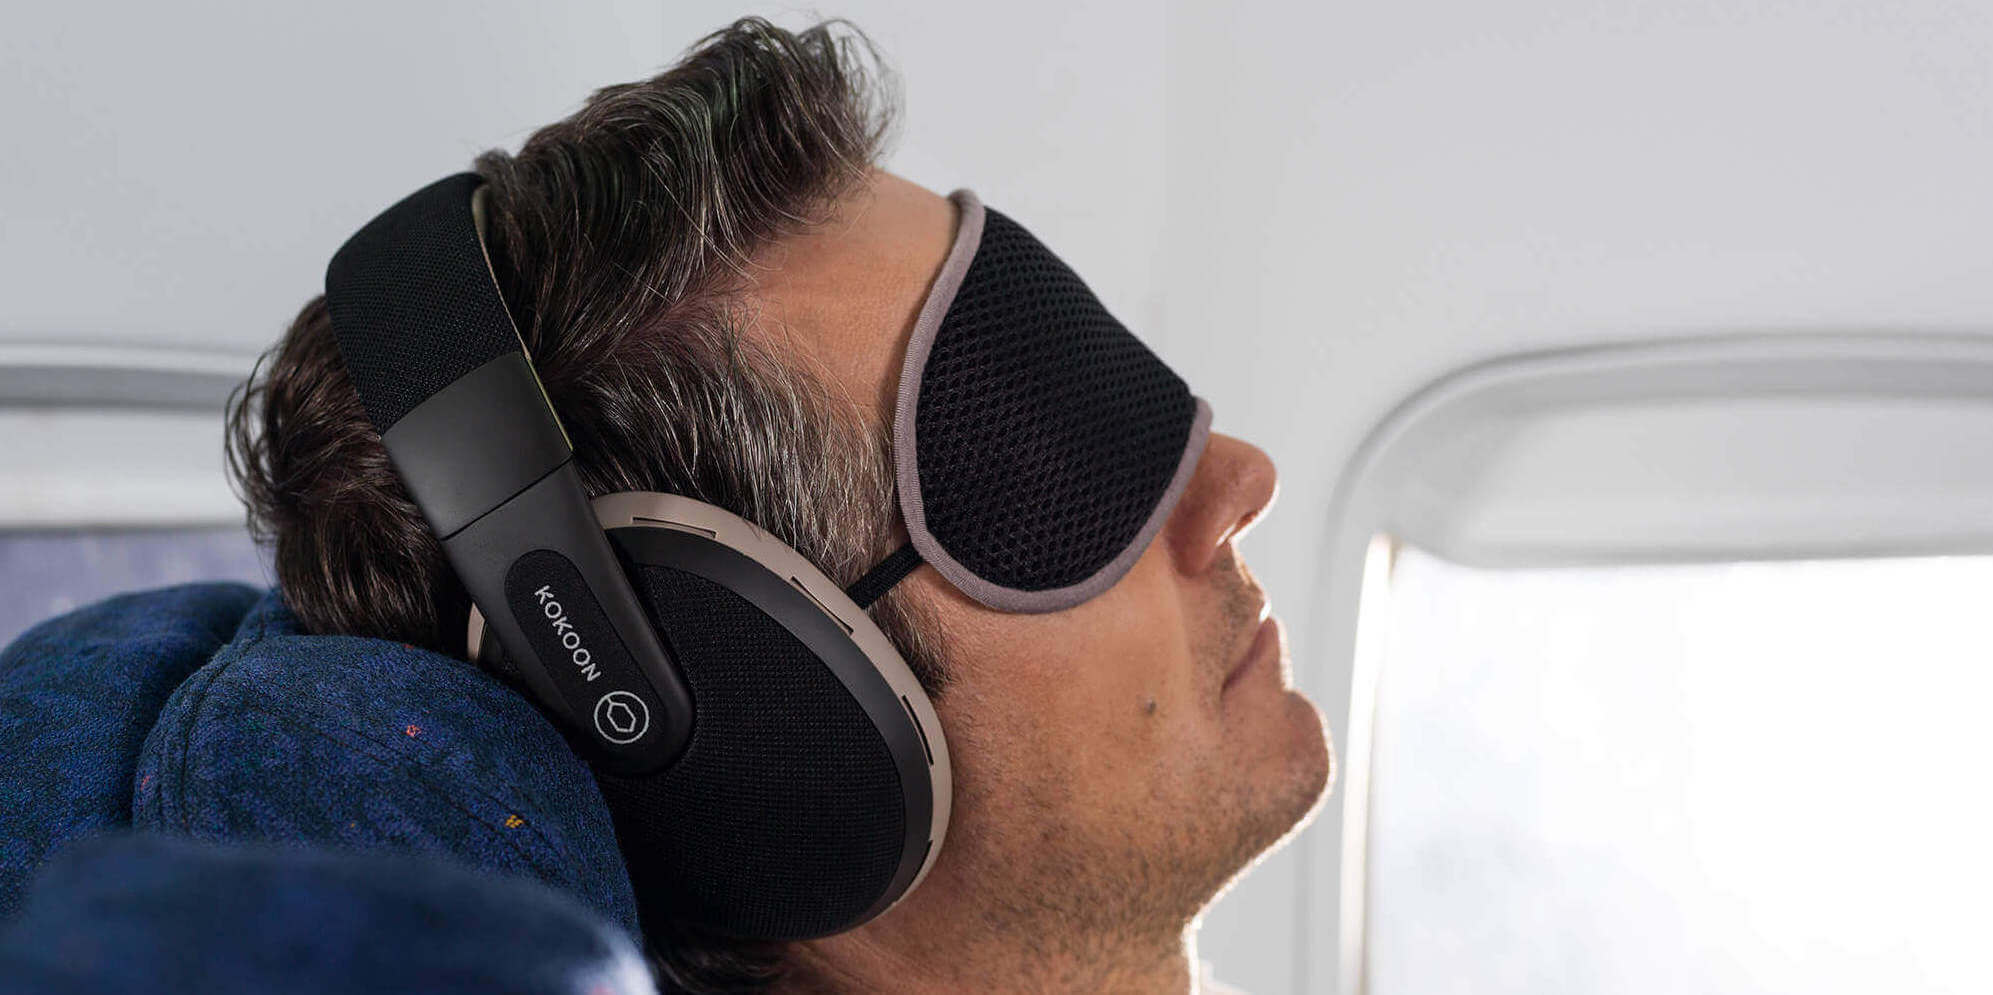 The mobile app & EEG headphones that lull you to sleep